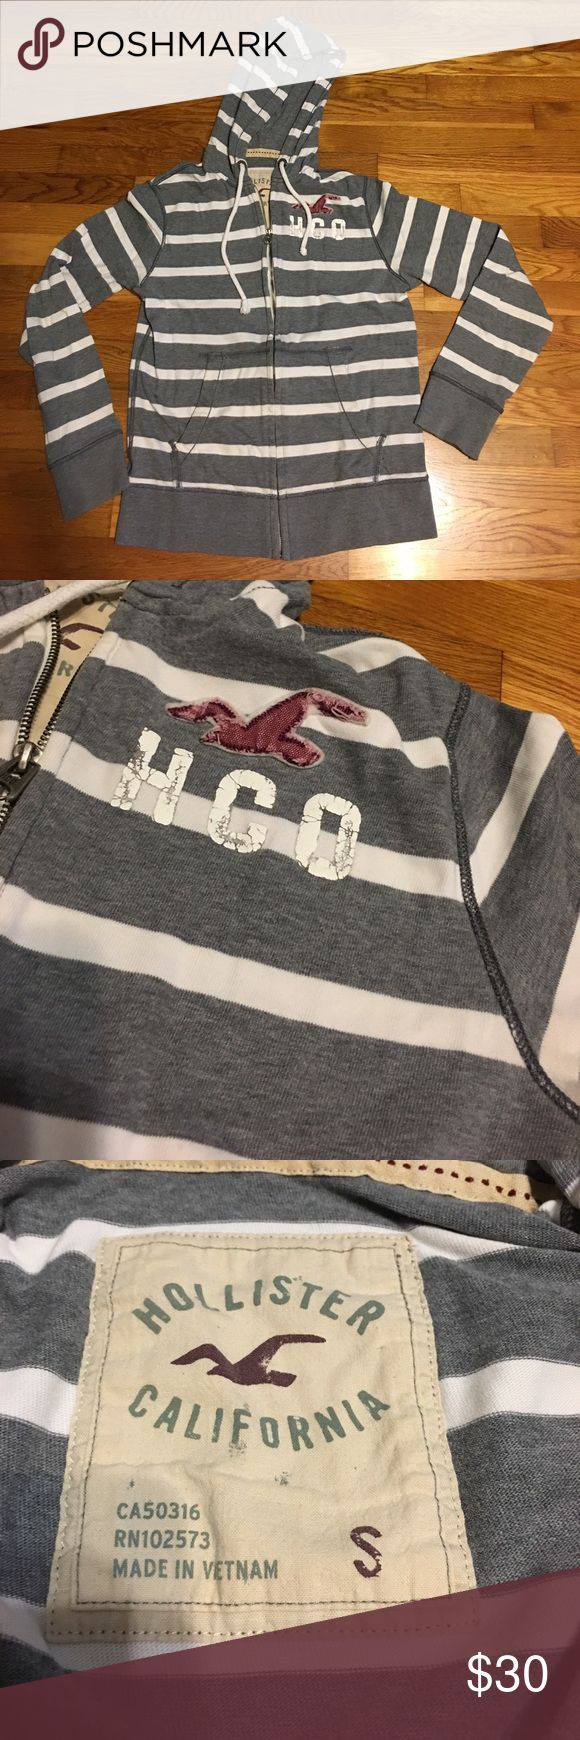 Stripe zip up hoodie sweatshirt Gray and white stripe Hollister men's hoodie size small ; but I've worn this sweatshirt and I'm a size M - had a nice comfortable fit - fit in all the right places Hollister Sweaters Zip Up